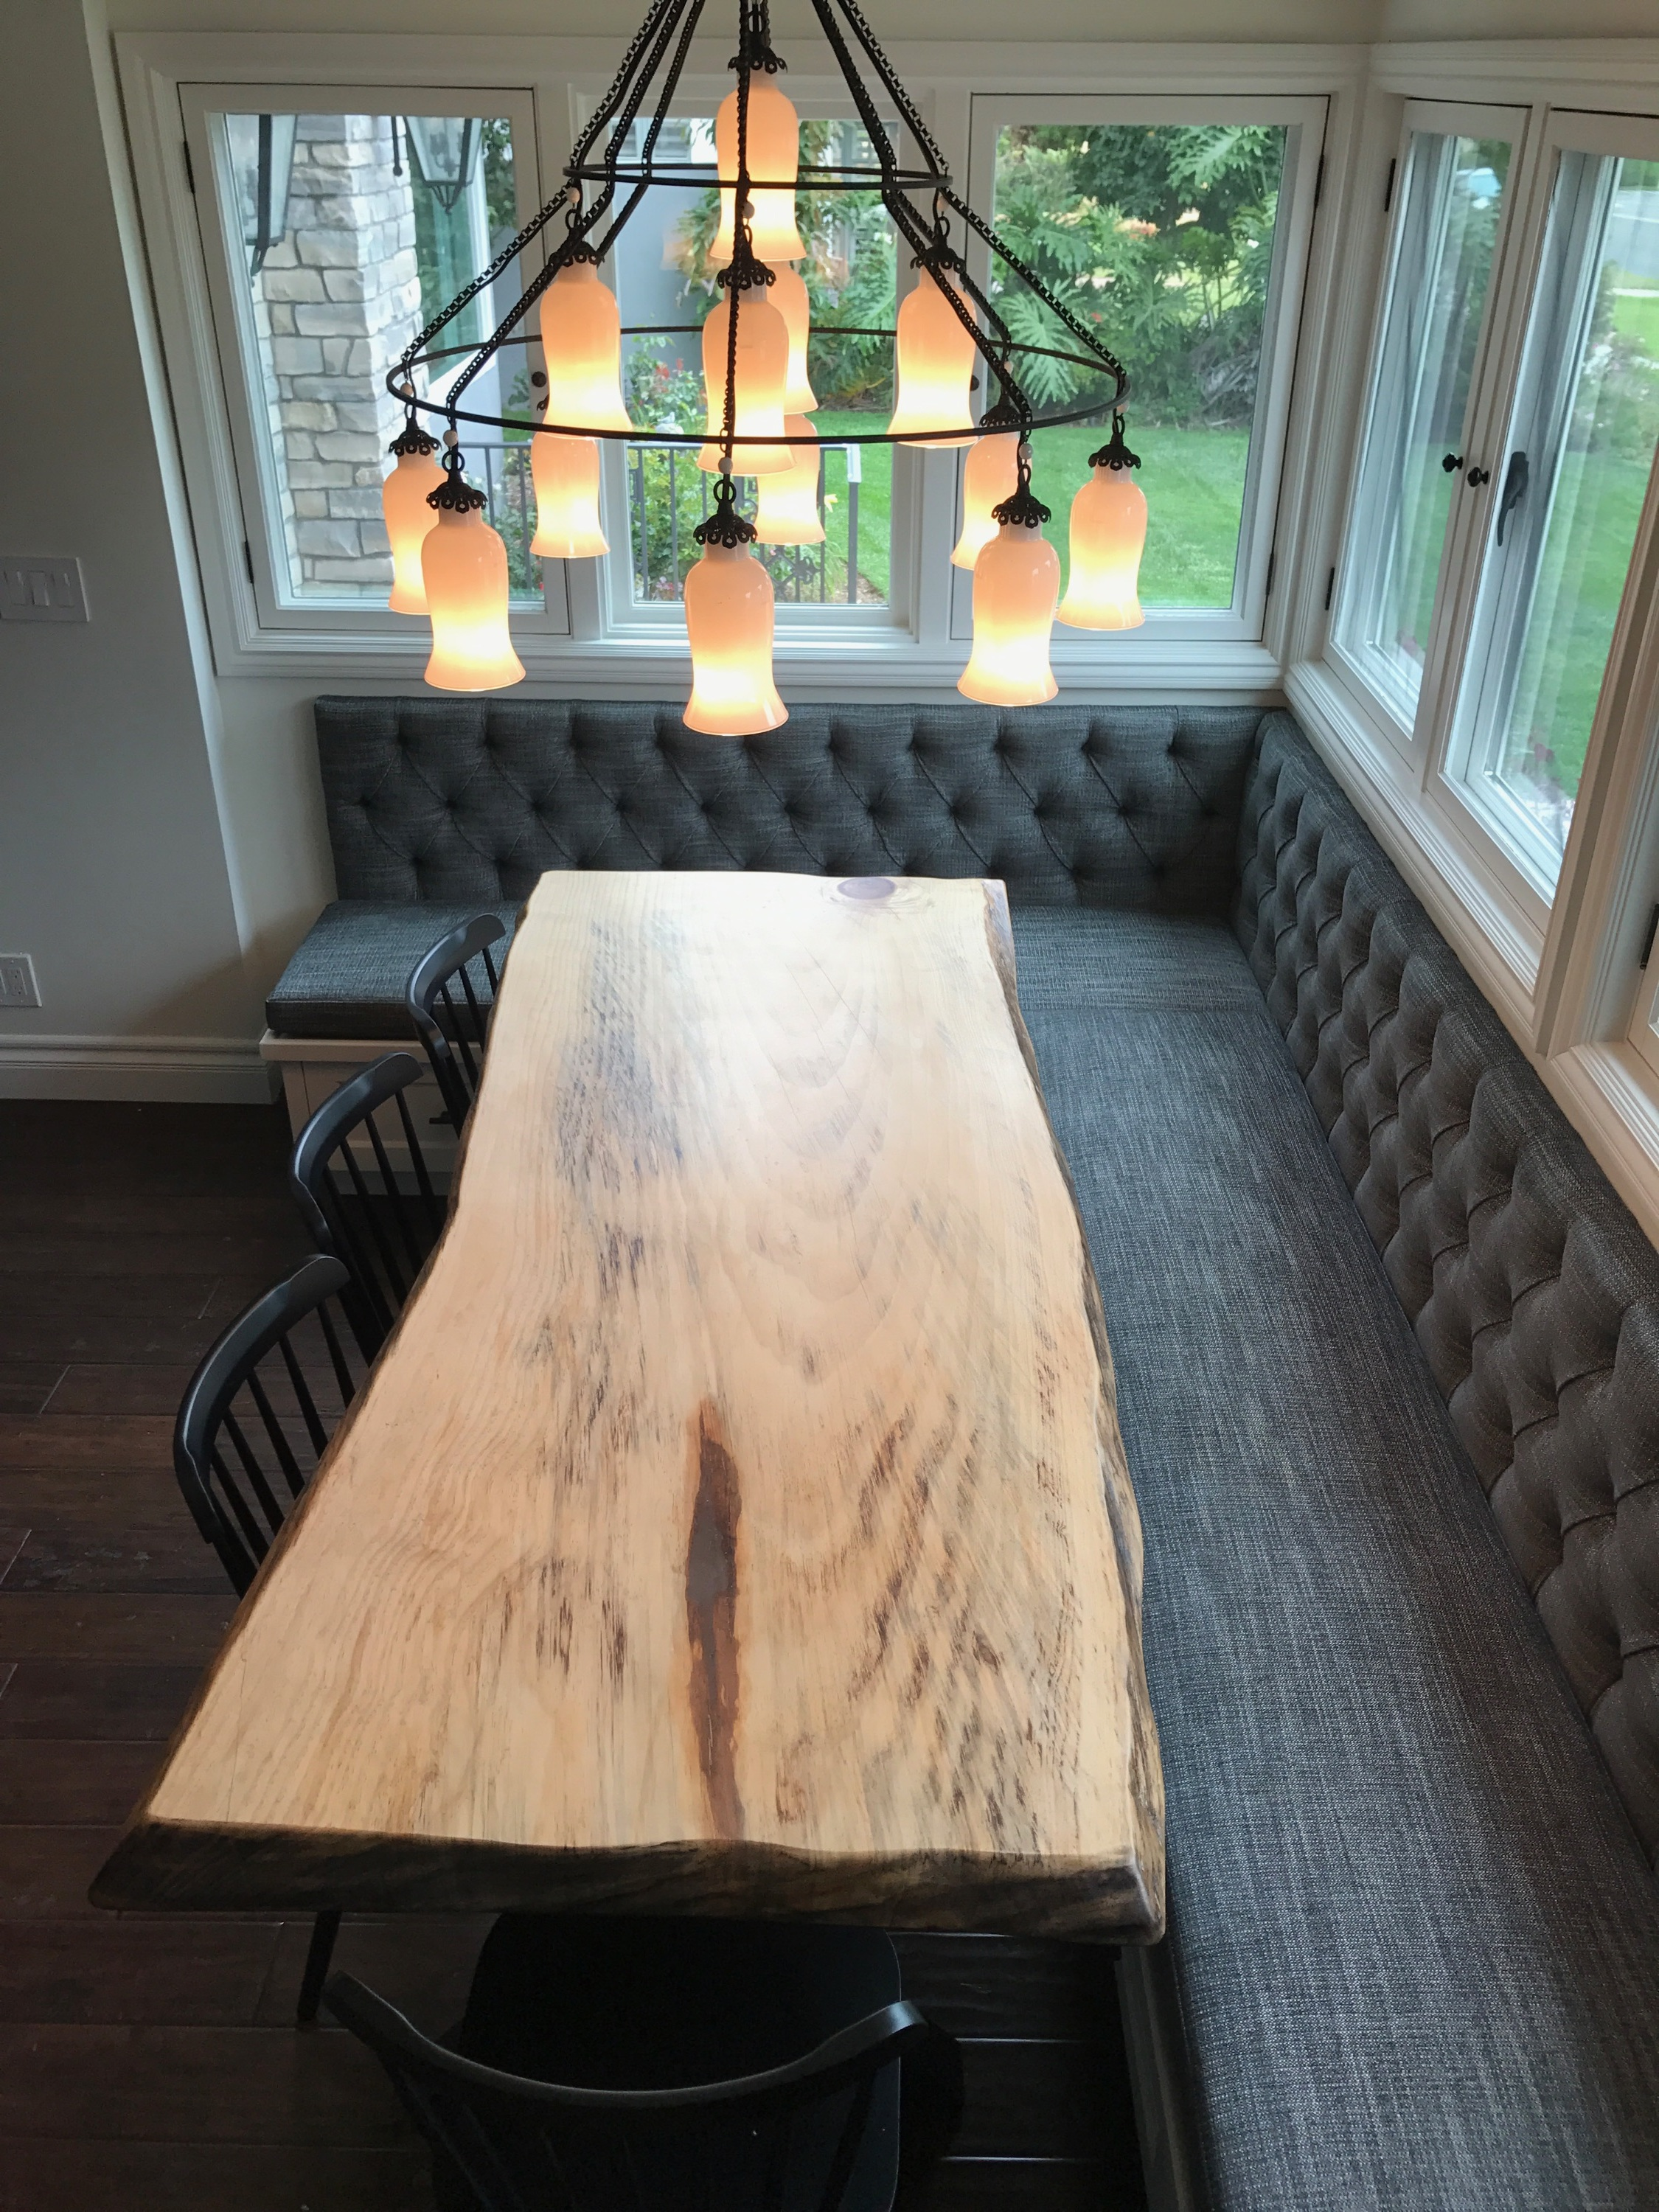 This gorgeous live edge slab table top is a great piece for a dining area. The slab is unique with wonderful character and details throughout the entire piece. The live edges give the table a beautiful completed look. U.S. Reclaimed, Vintage Lumber & Wood Works has a variety of slabs along with reclaimed wood available to start any home project. Contact or visit the store to get started on your new project with reclaimed wood.